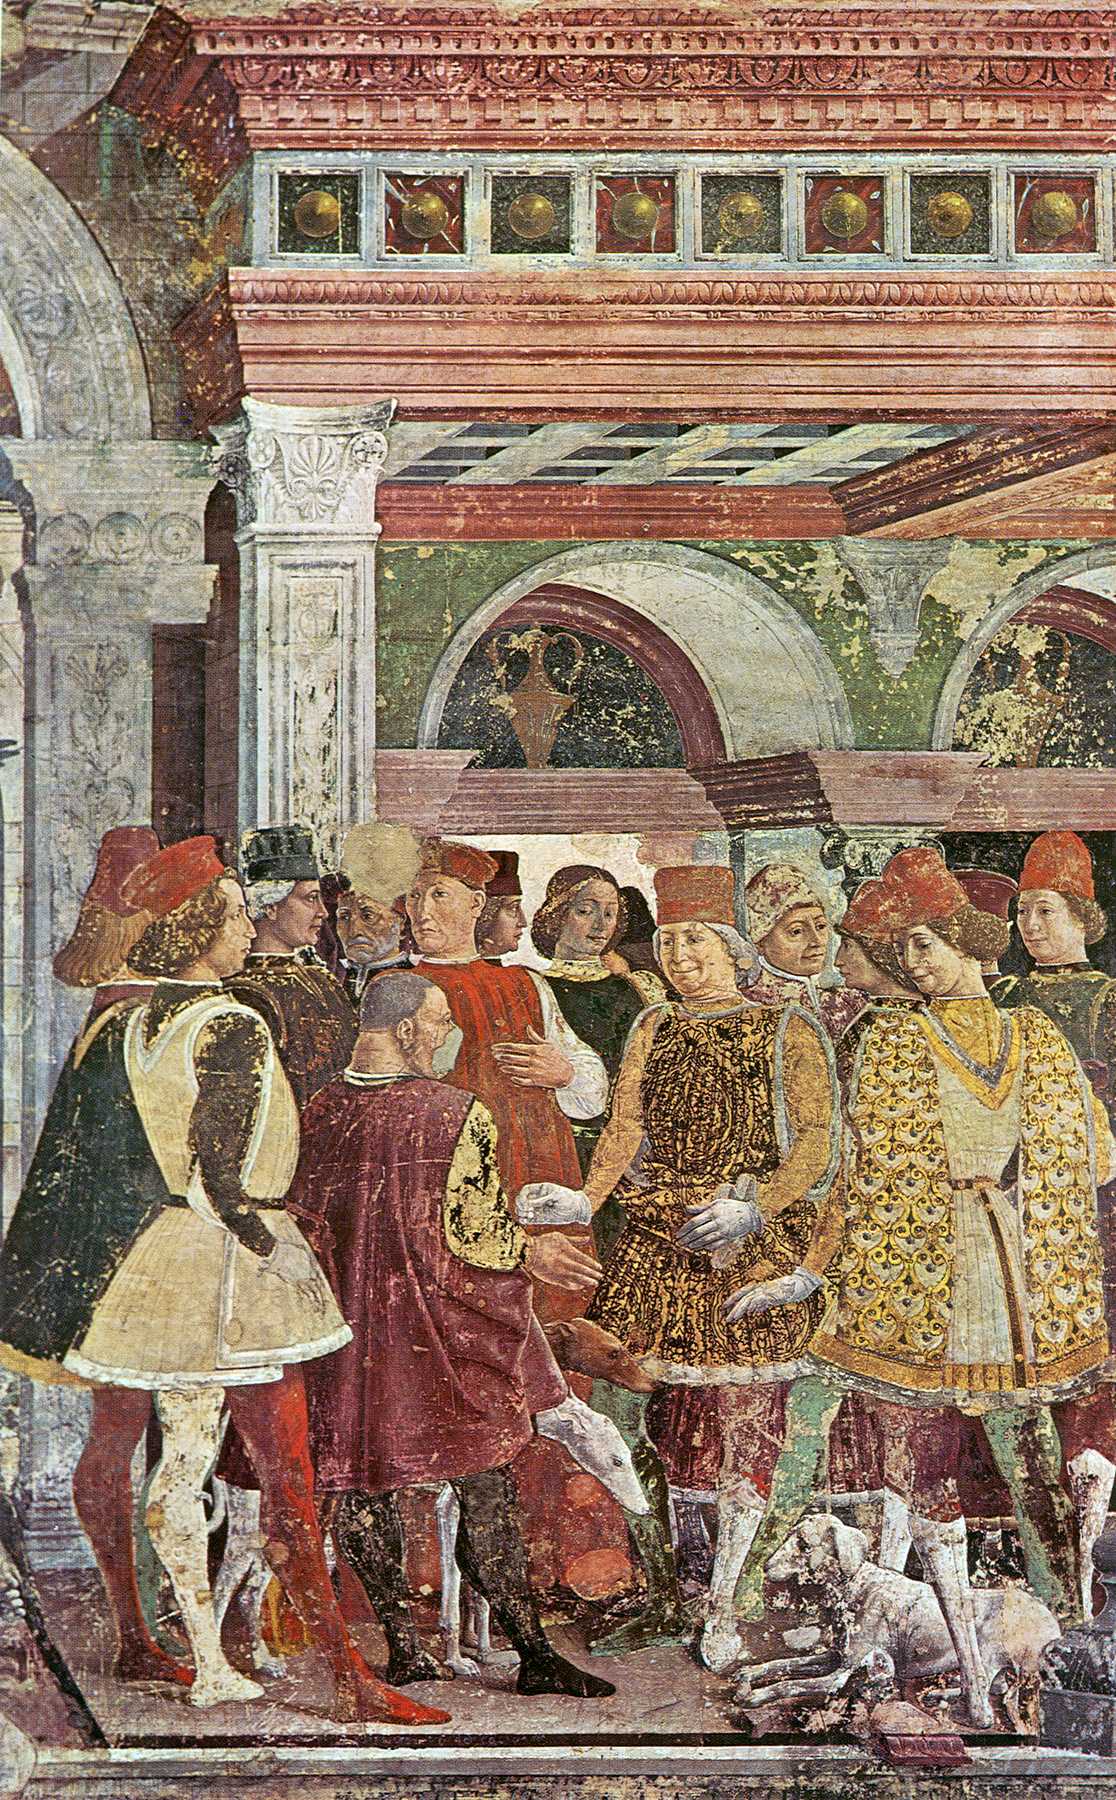 http://upload.wikimedia.org/wikipedia/commons/3/31/Aprile%2C_francesco_del_cossa%2C_15.jpg?uselang=de